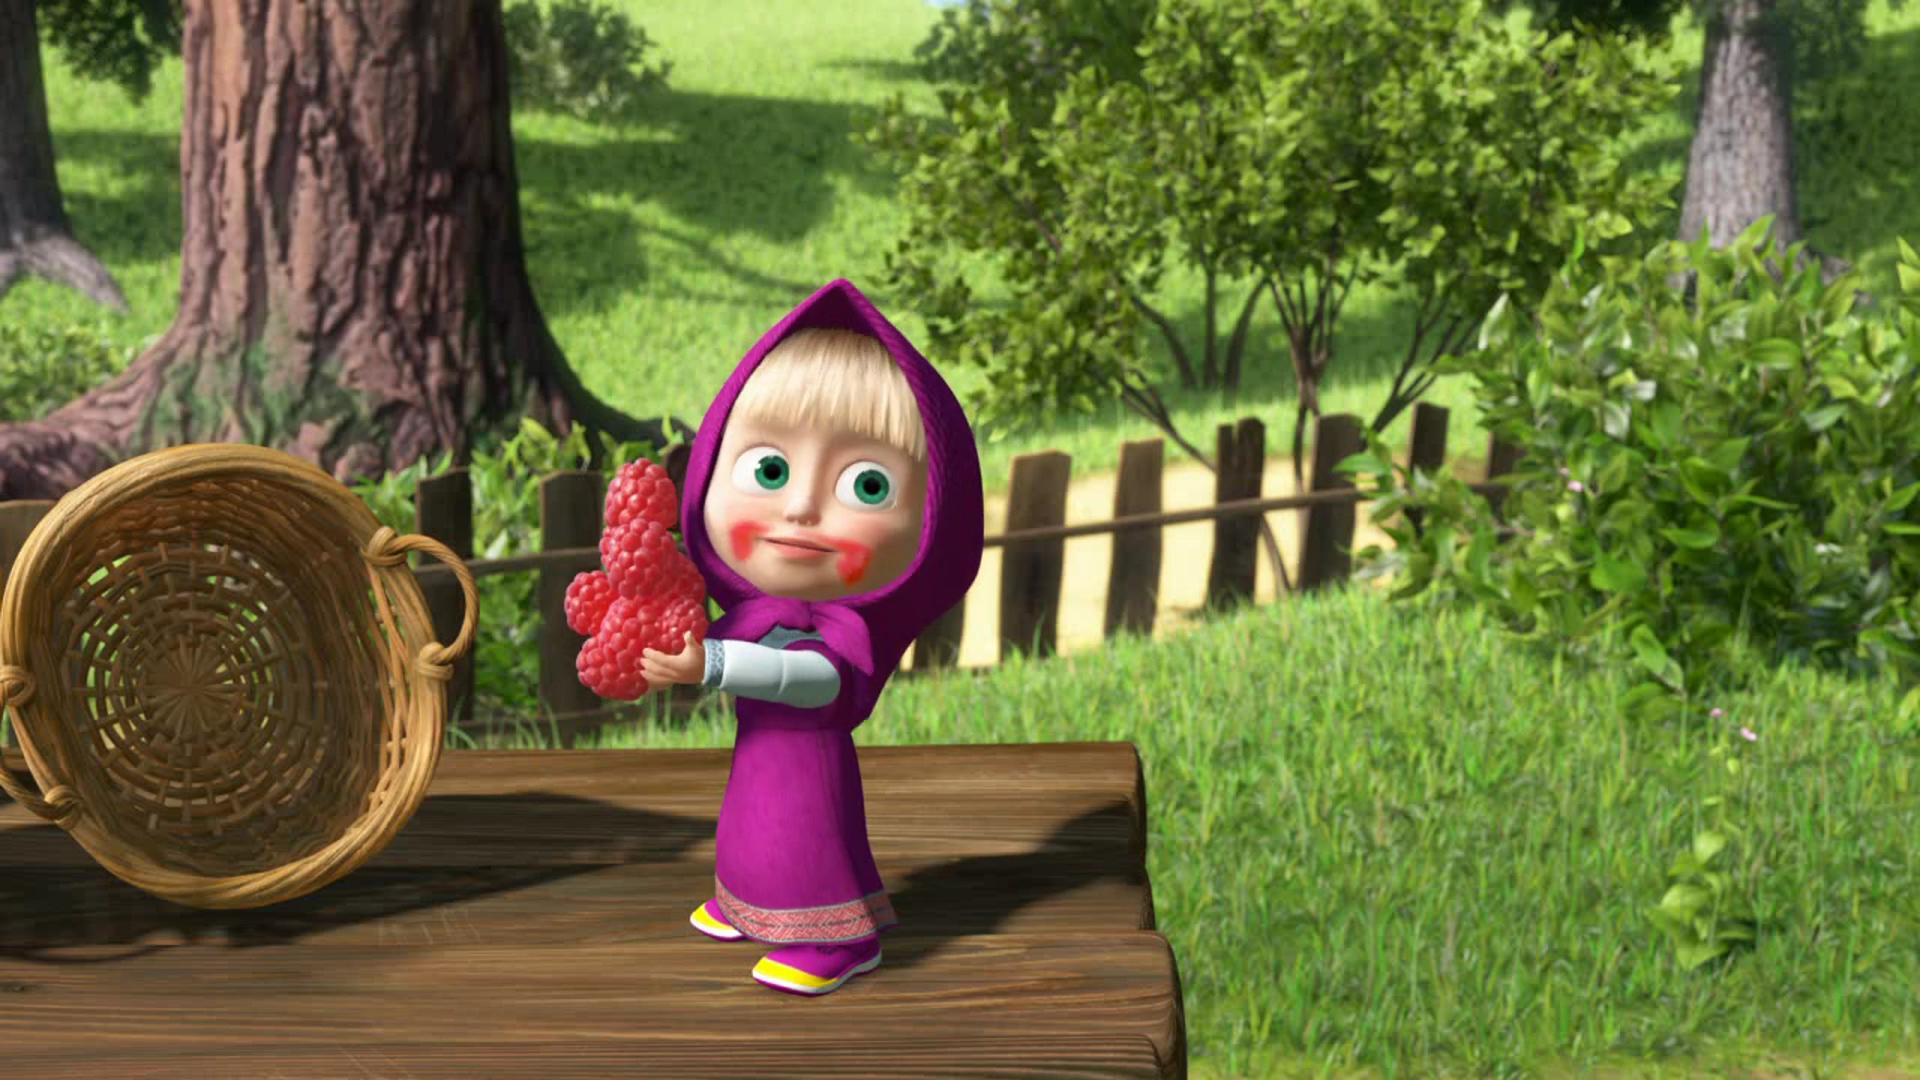 Free Download Masha And The Bear Wallpapers And Background Images Stmednet 1920x1080 For Your Desktop Mobile Tablet Explore 44 Masha Background Masha Background